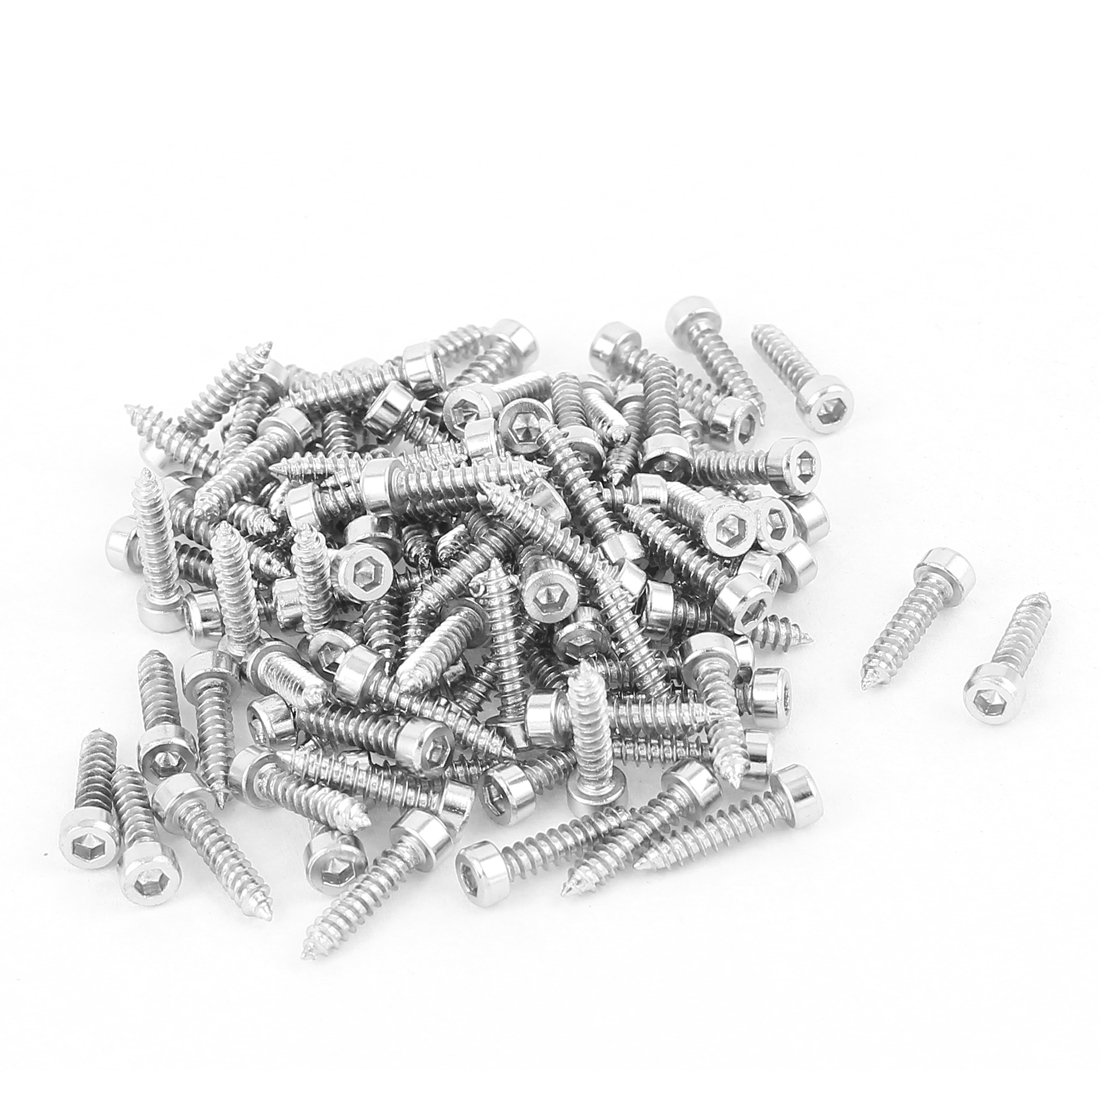 2.6mm x 12mm Nickel Plated Hex Head Self Tapping Screws Silver Tone 100 Pcs